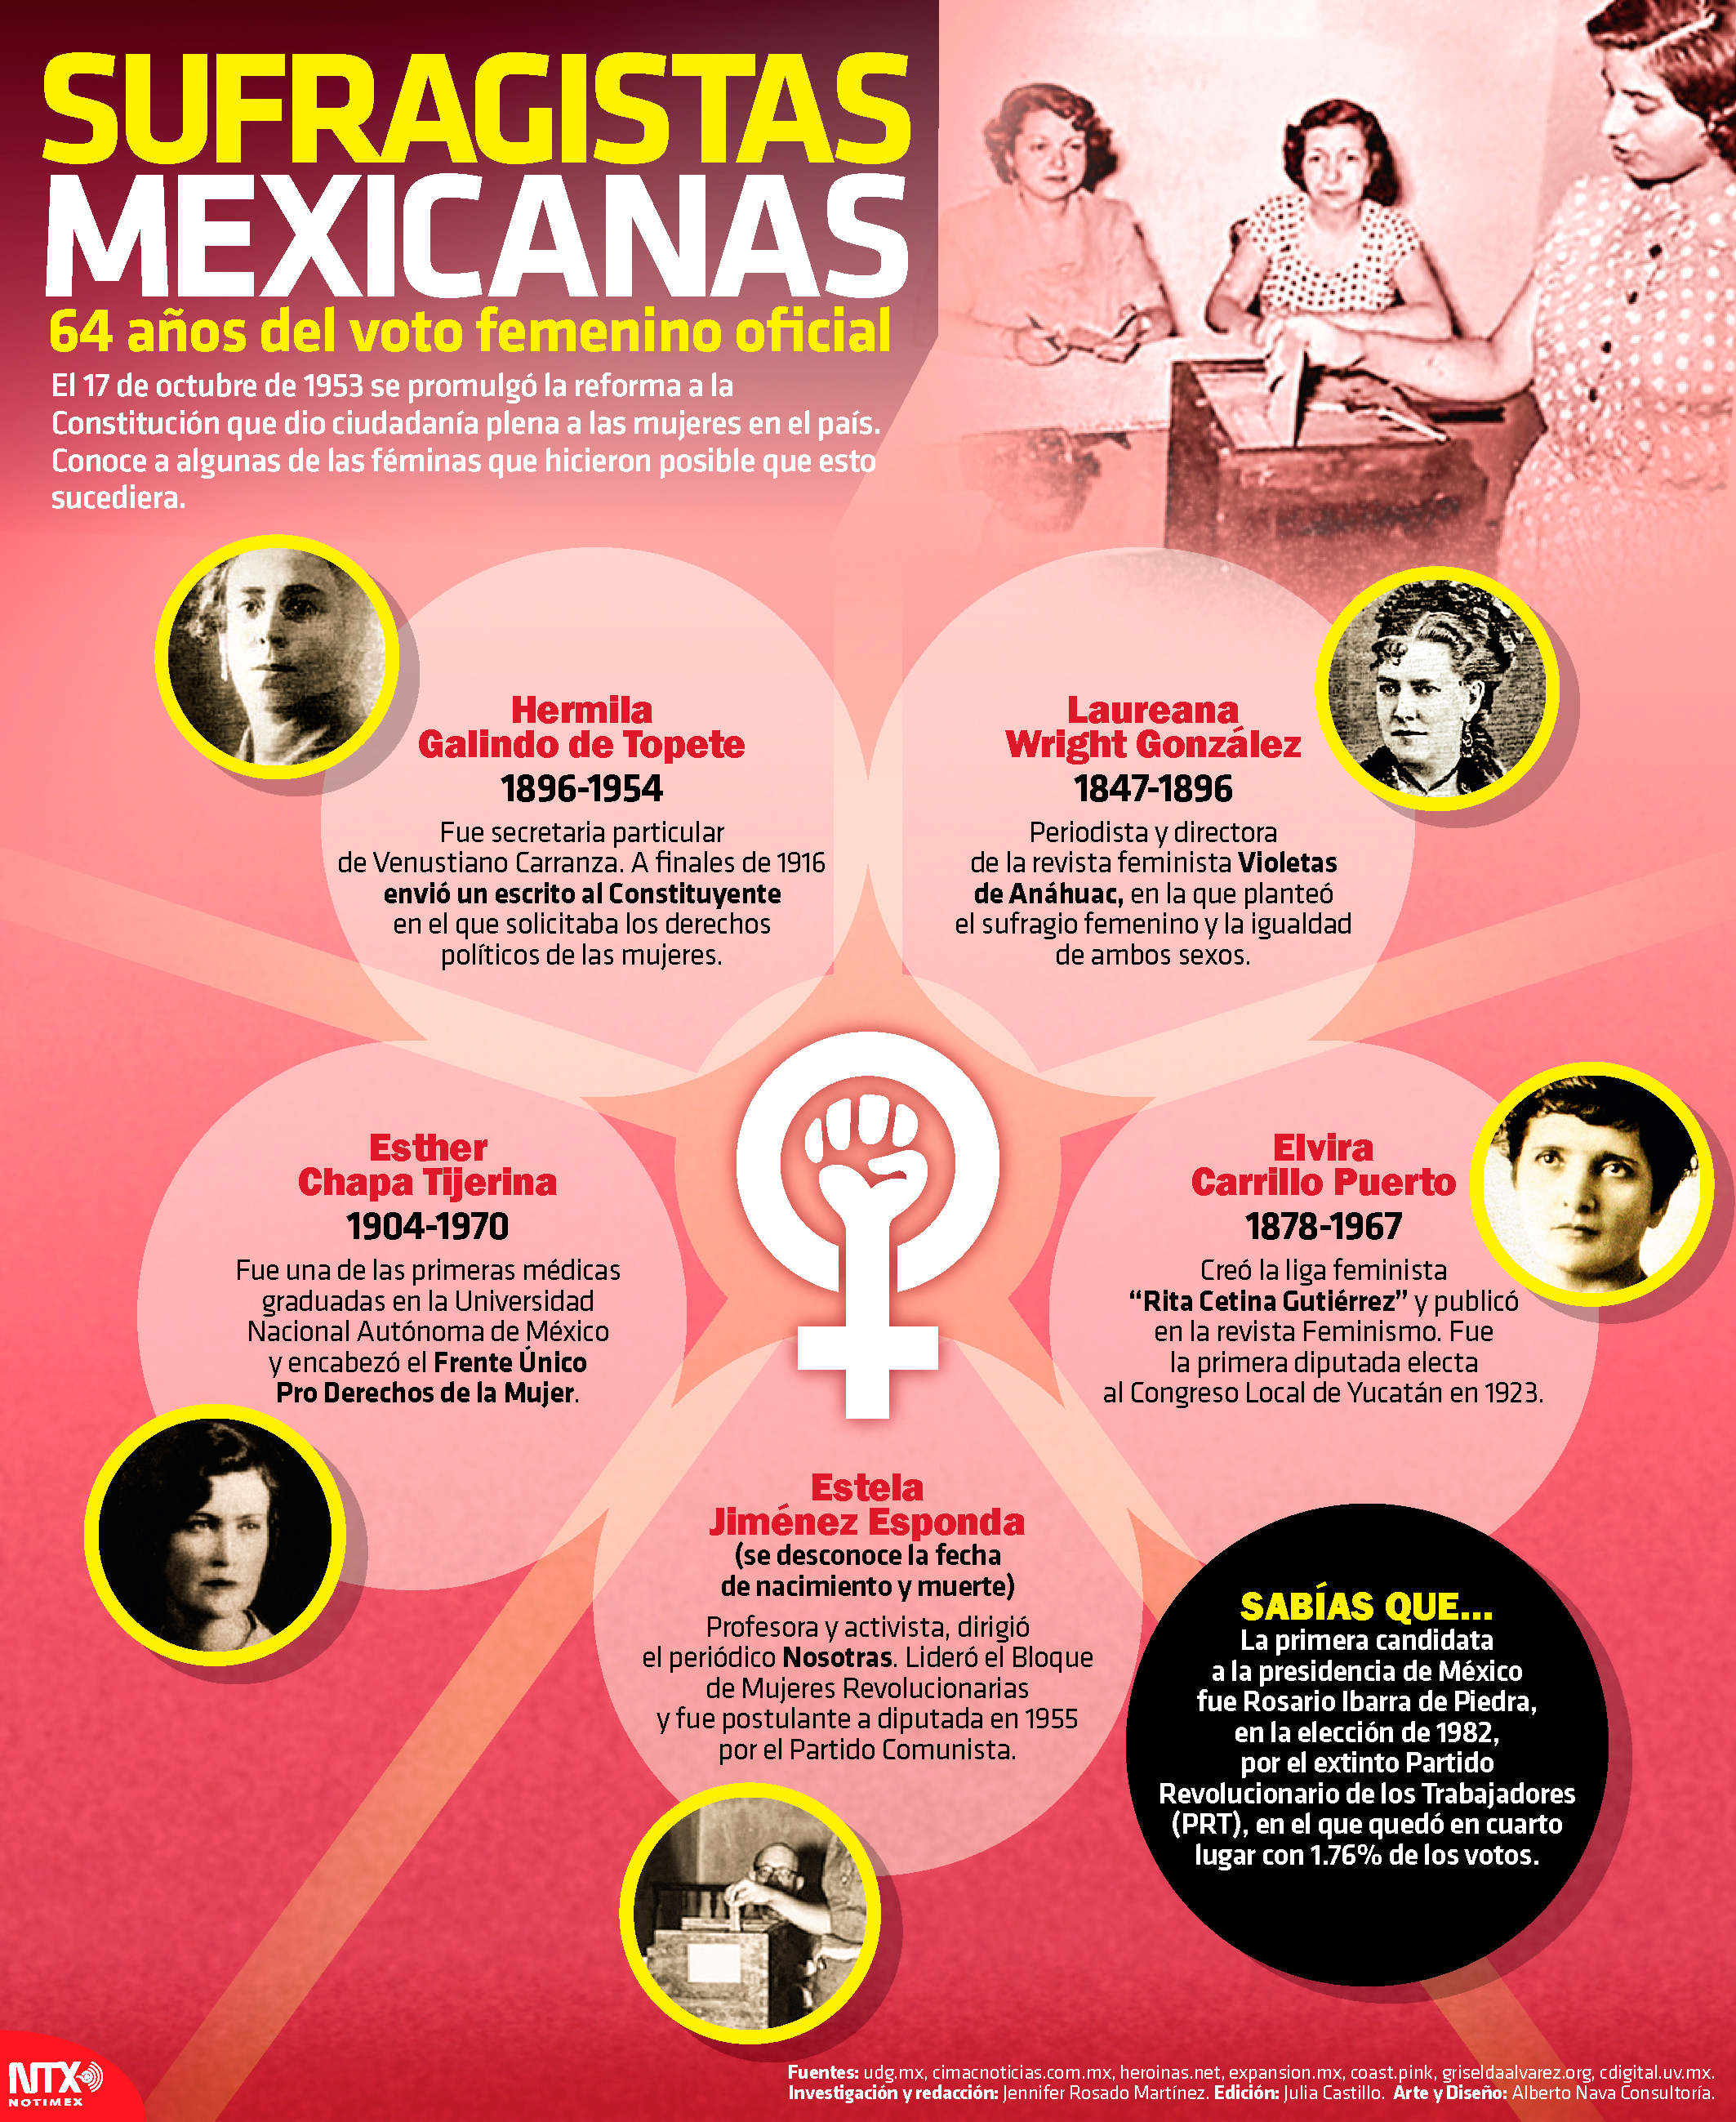 Sufragistas mexicanas